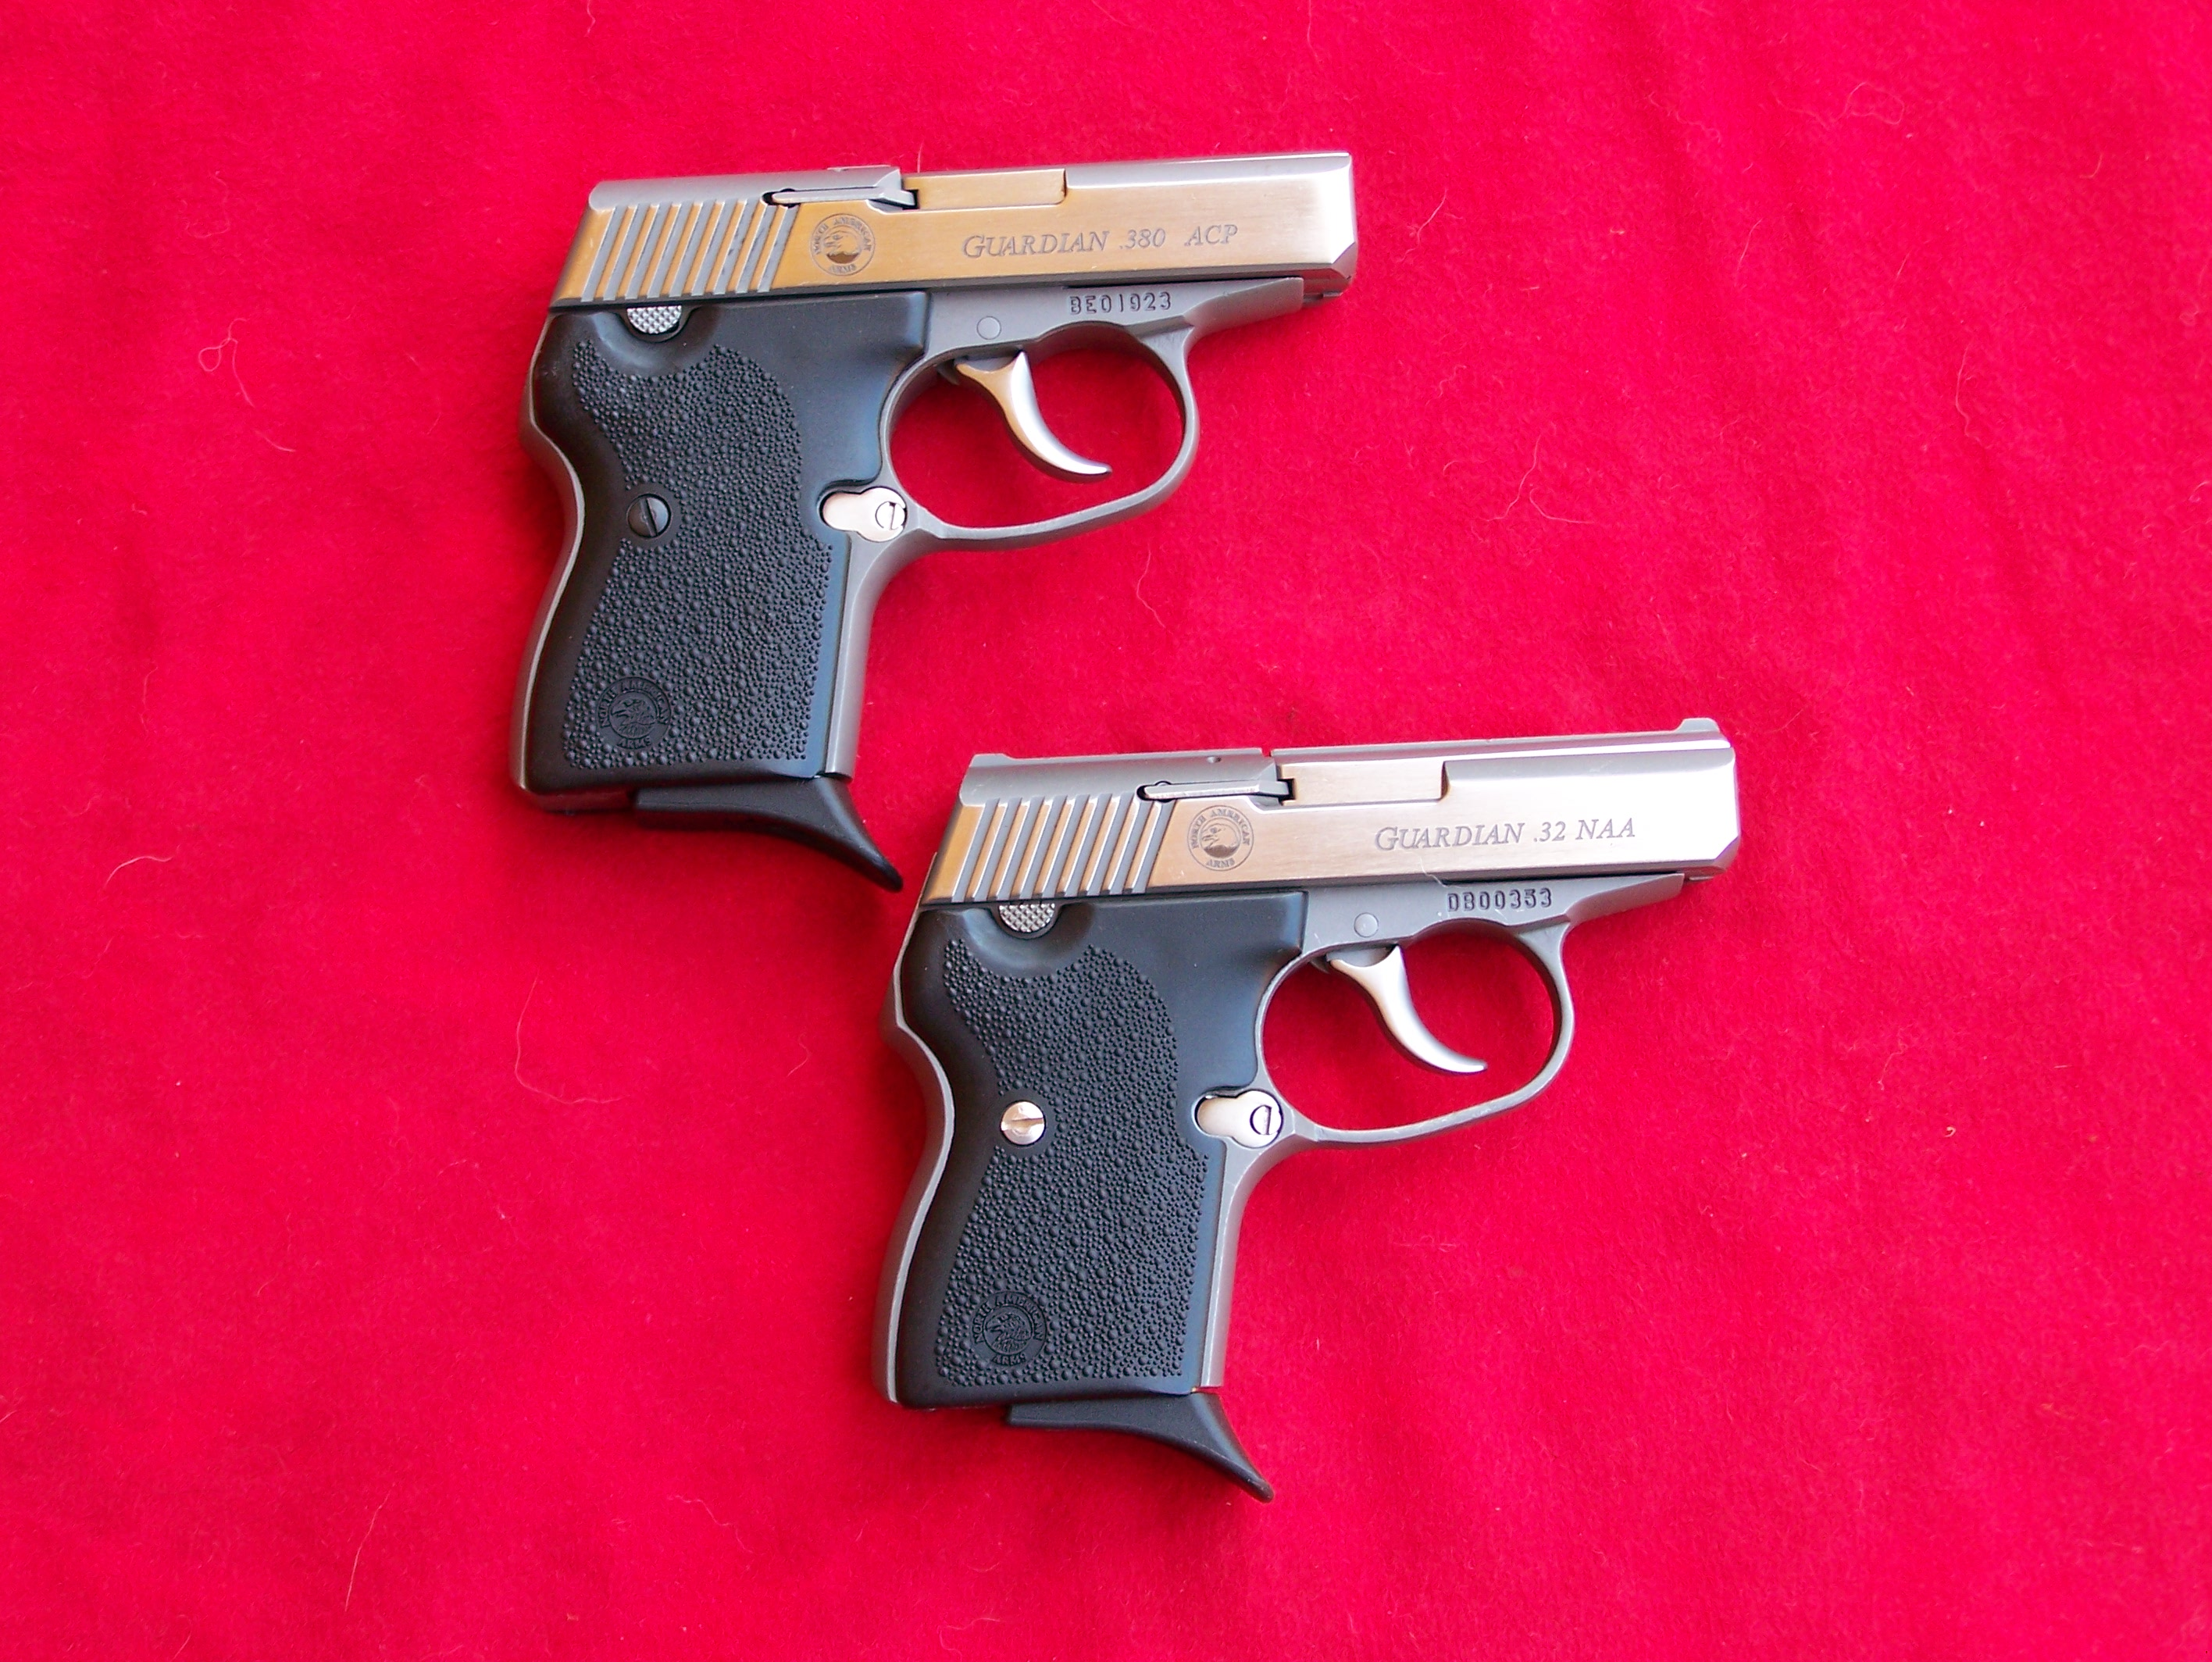 380 ACP and .32NAA Guardian Pistols North American Arms